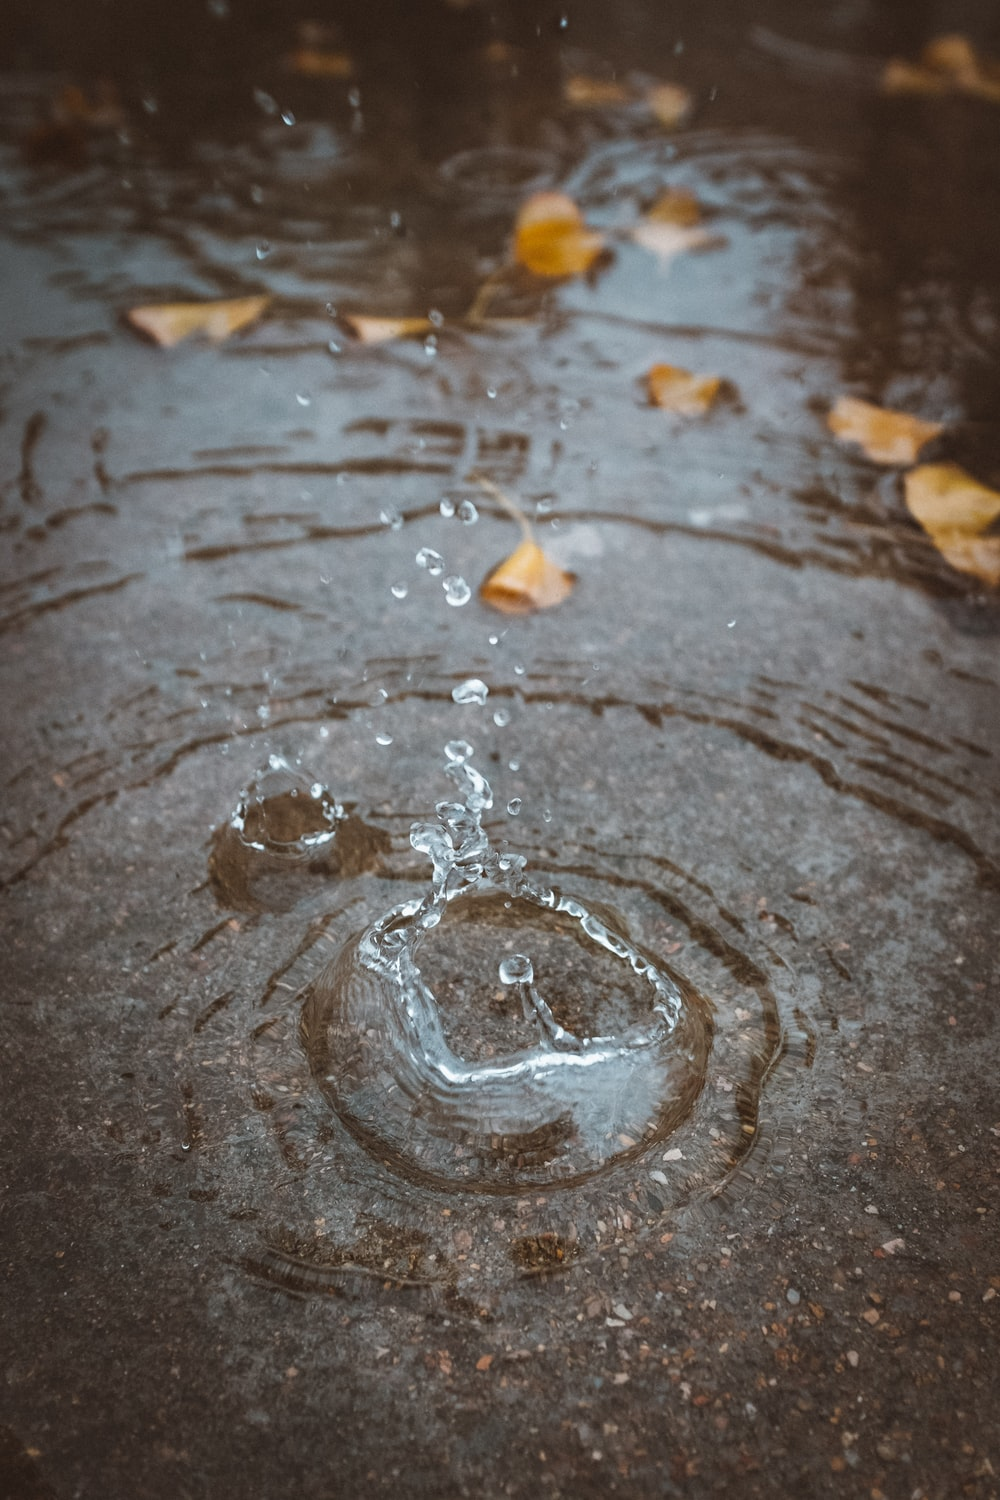 water ripple in closeup photography